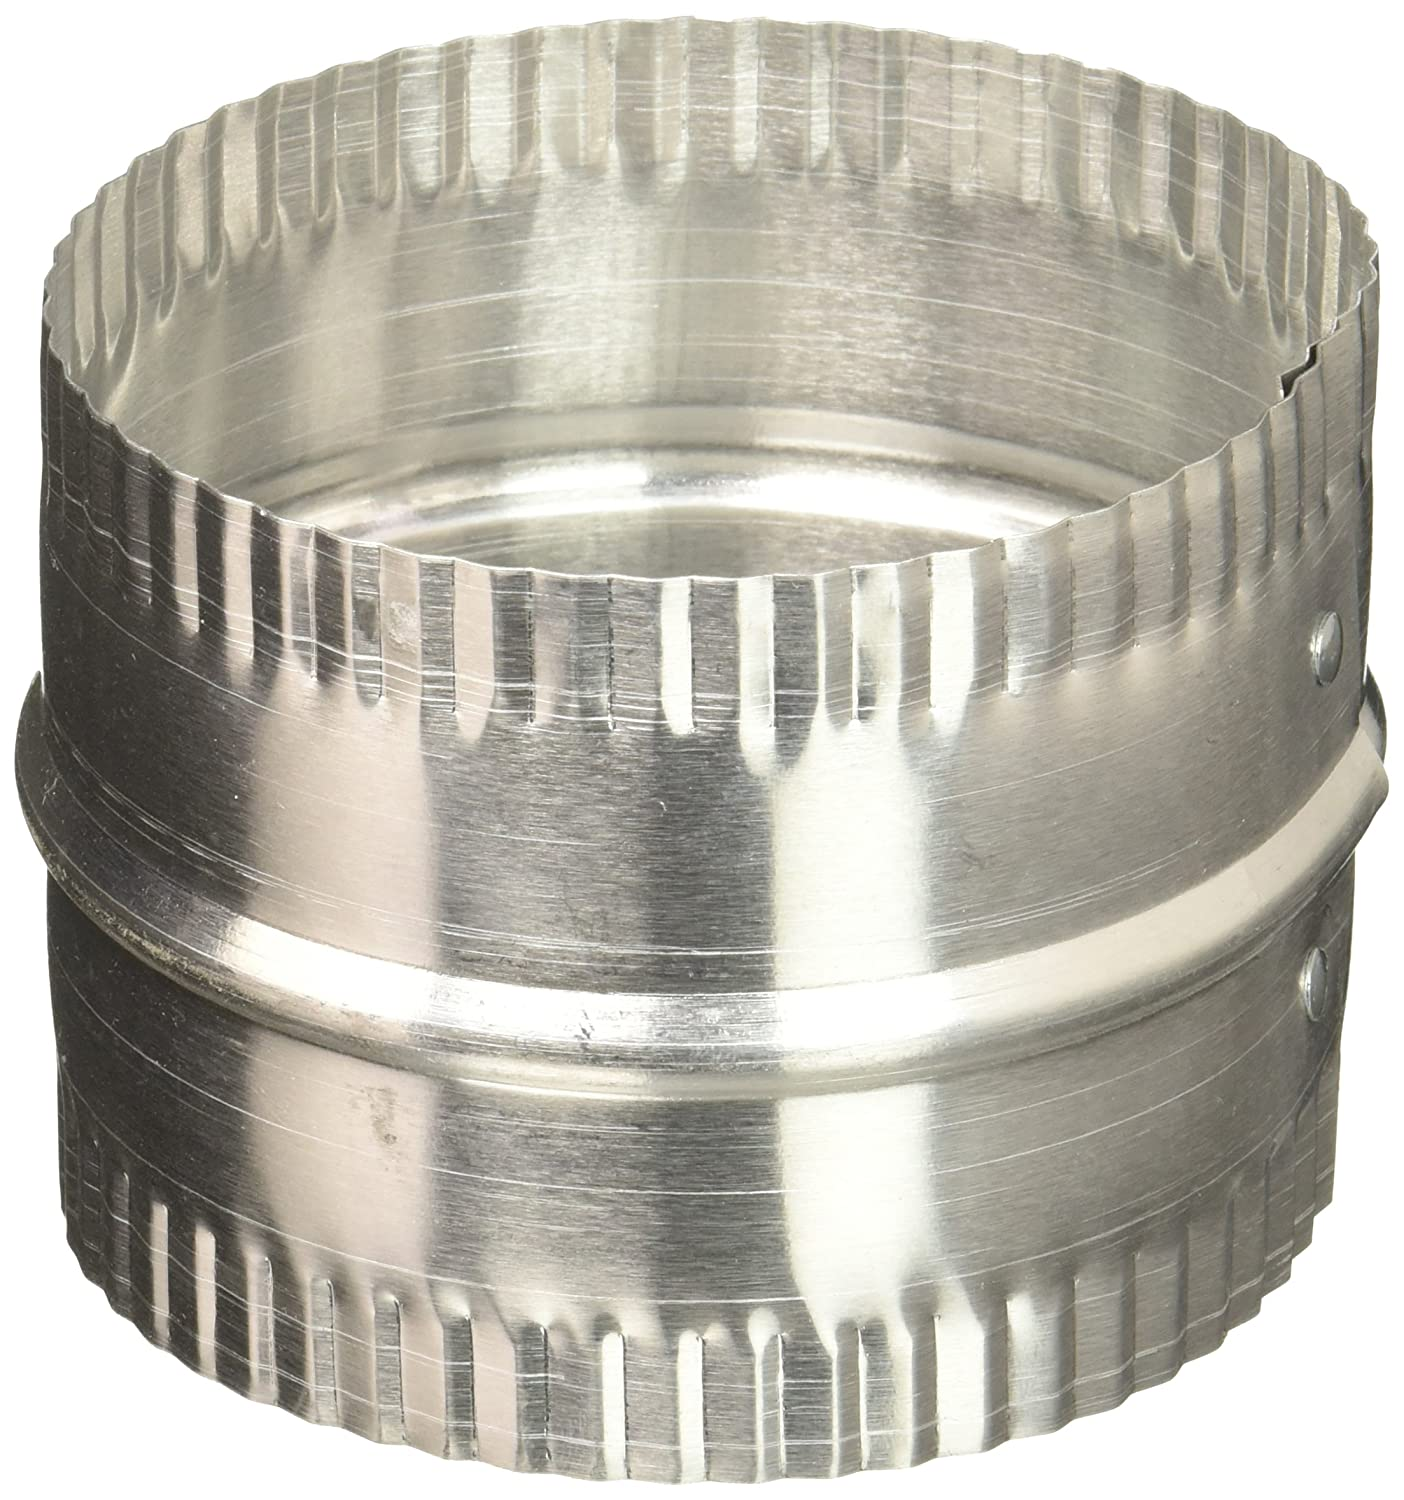 Lambro 244 4-Inch Aluminum Duct Connector